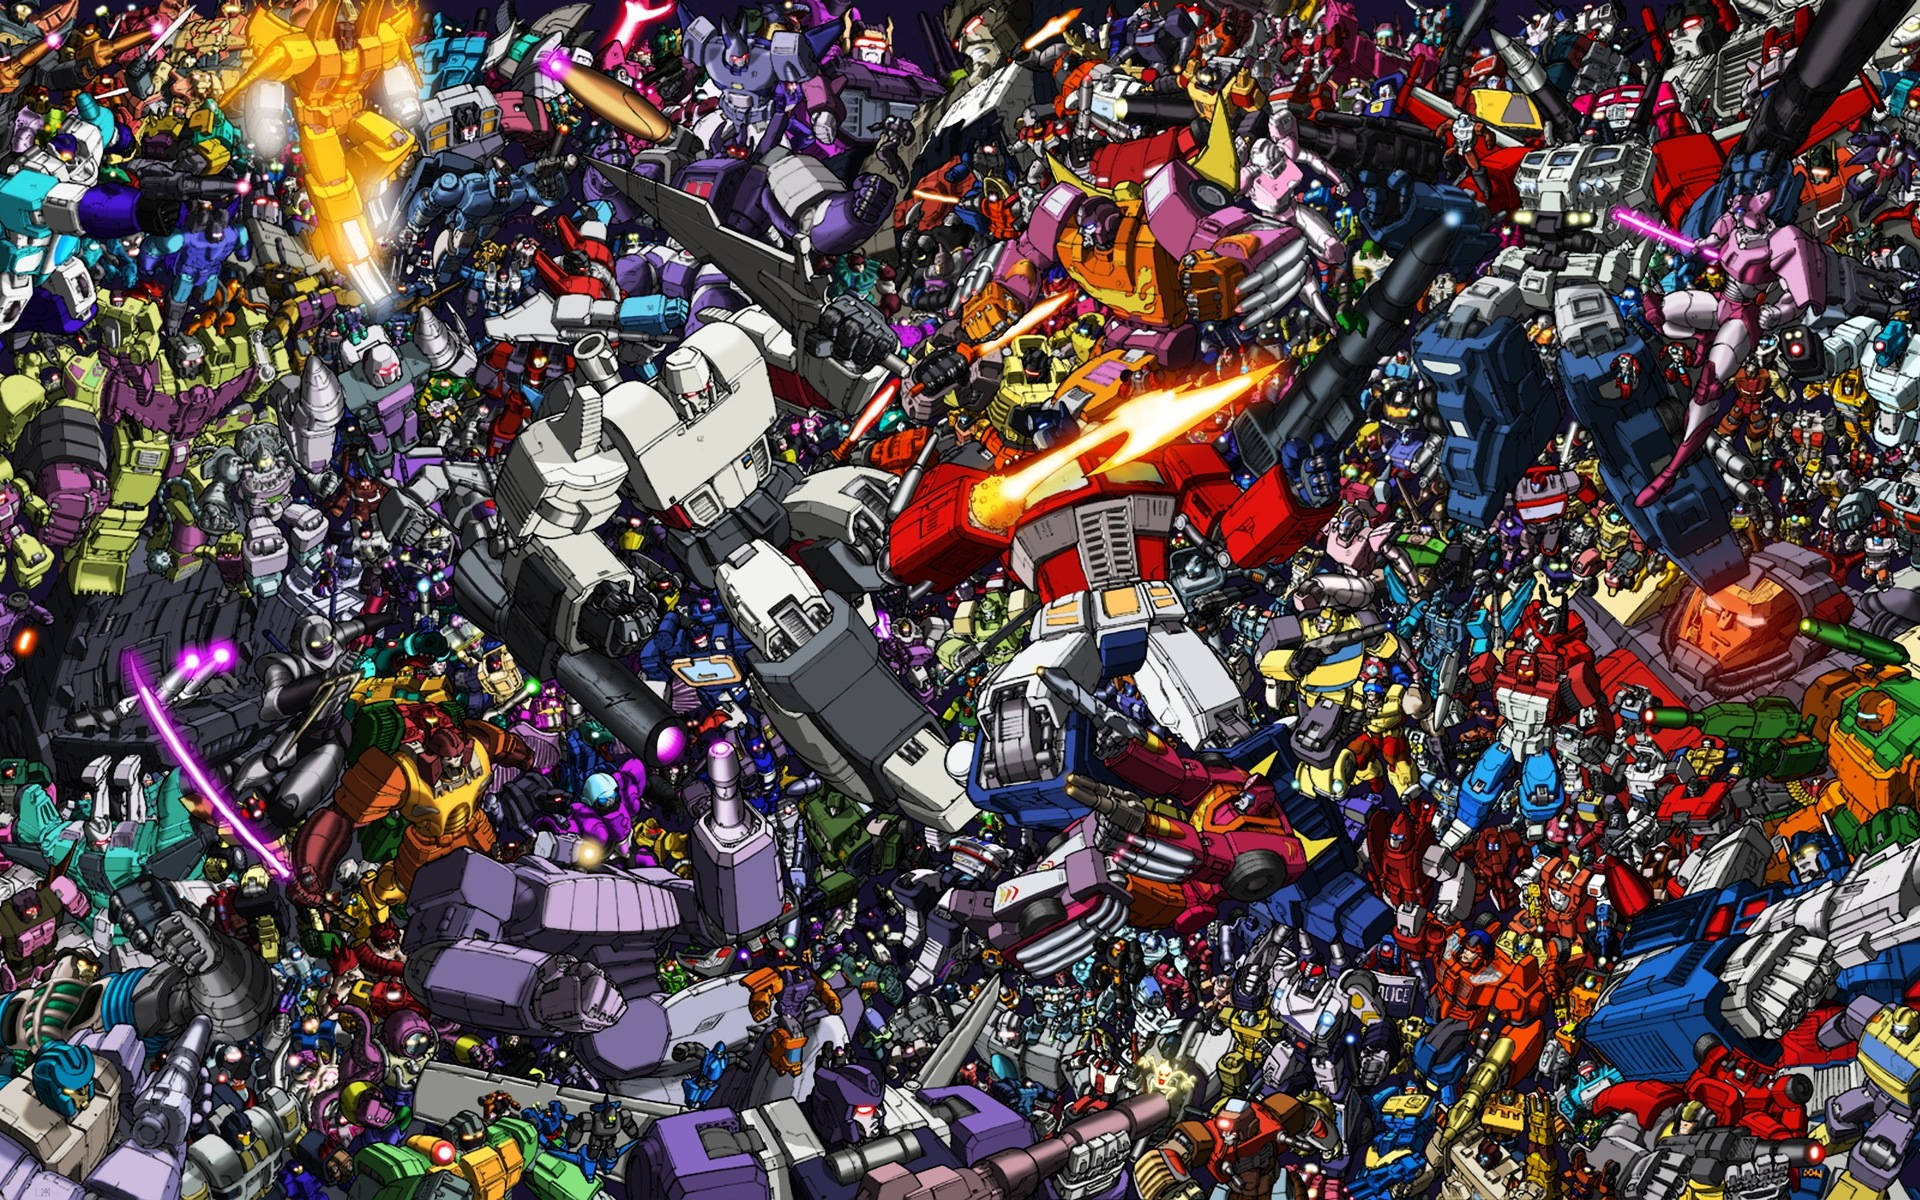 123 transformers hd wallpapers background images - Transformers desktop backgrounds ...